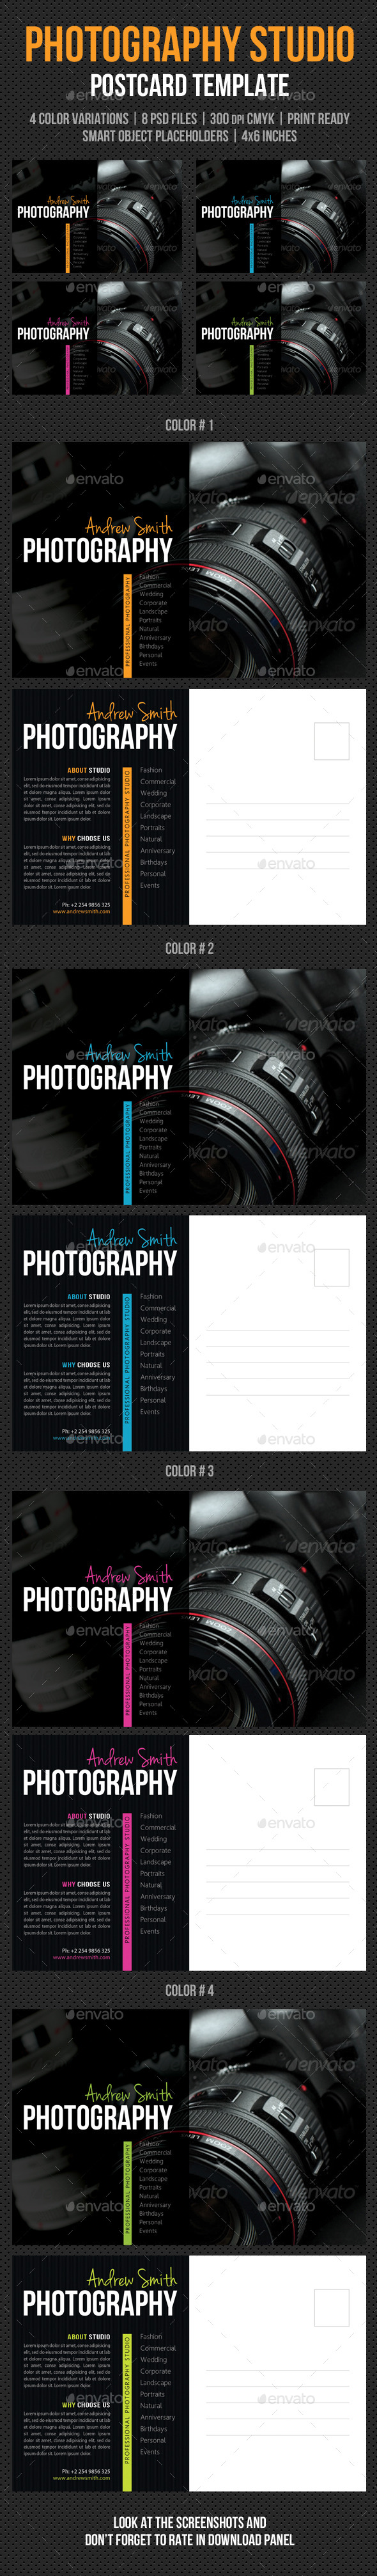 Photography Studio Postcard Template V03